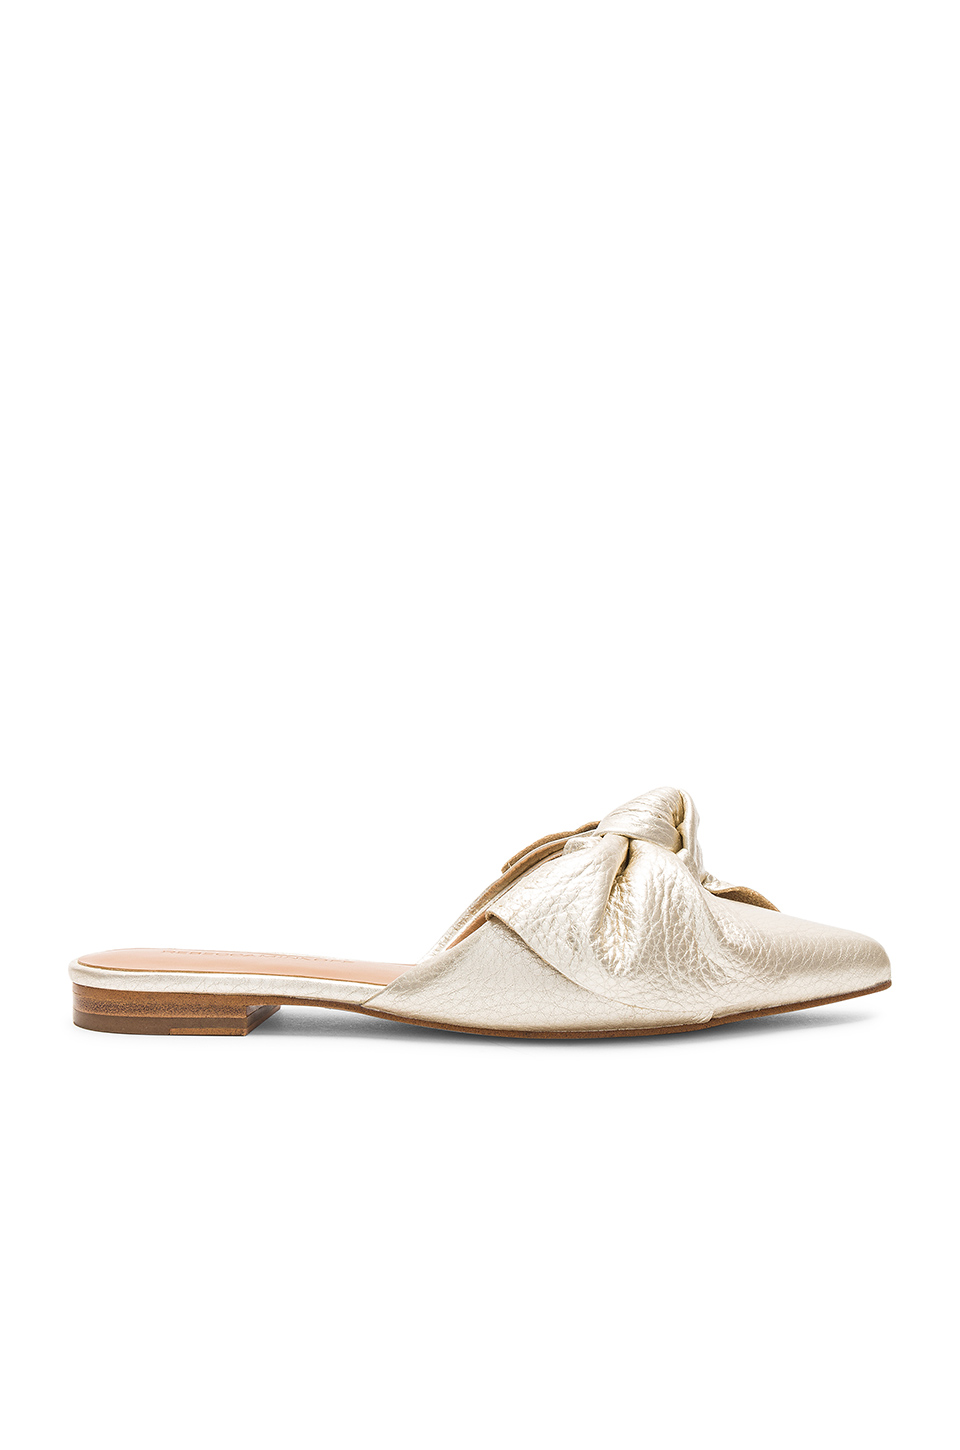 Rebecca Minkoff Alexis Slide in Gold Metallic